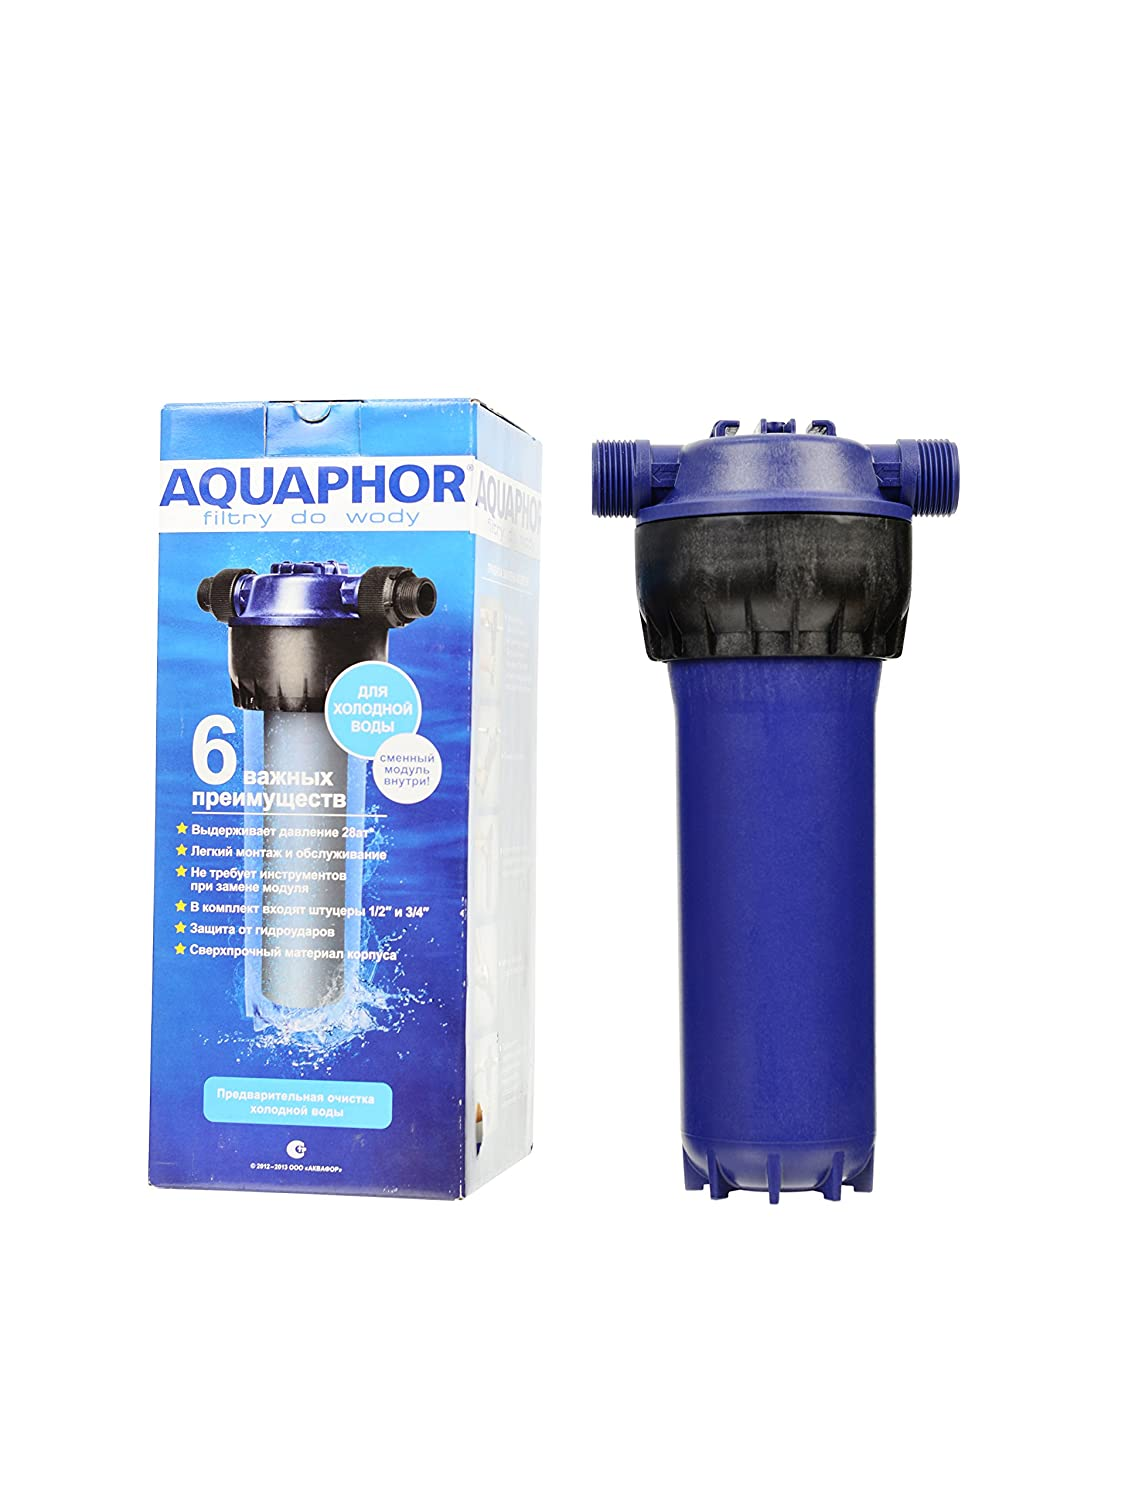 Aquaphor 4600987001661 Filter Housing 10 inch with Cartridge for Cold Water